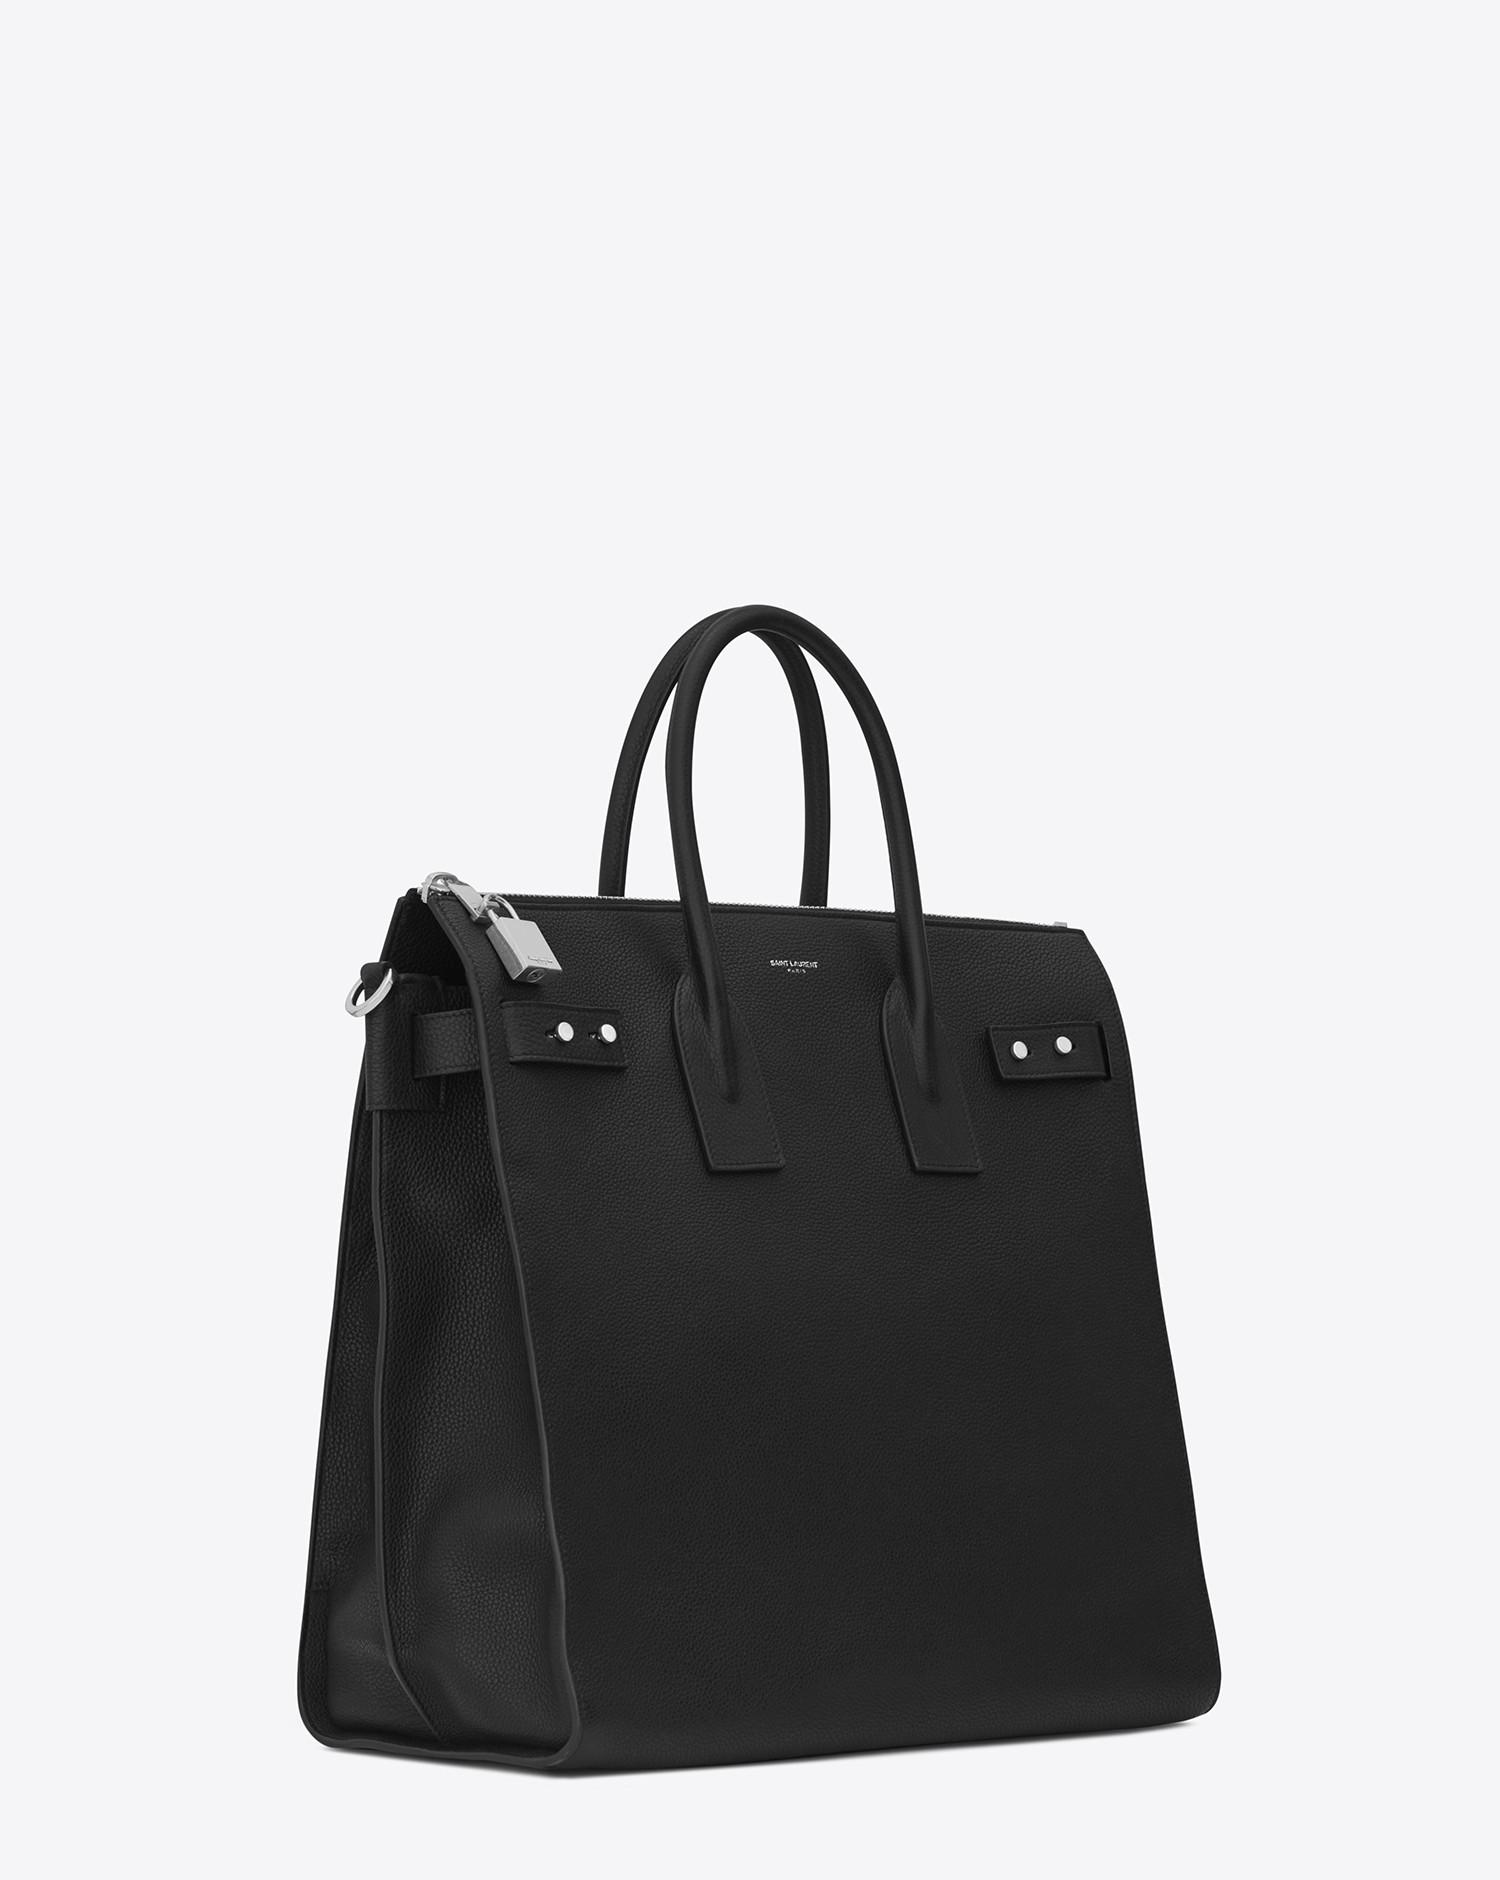 Lyst - Saint Laurent Sac De Jour North south Tote In Grained Leather ... 55a5280ad9e9